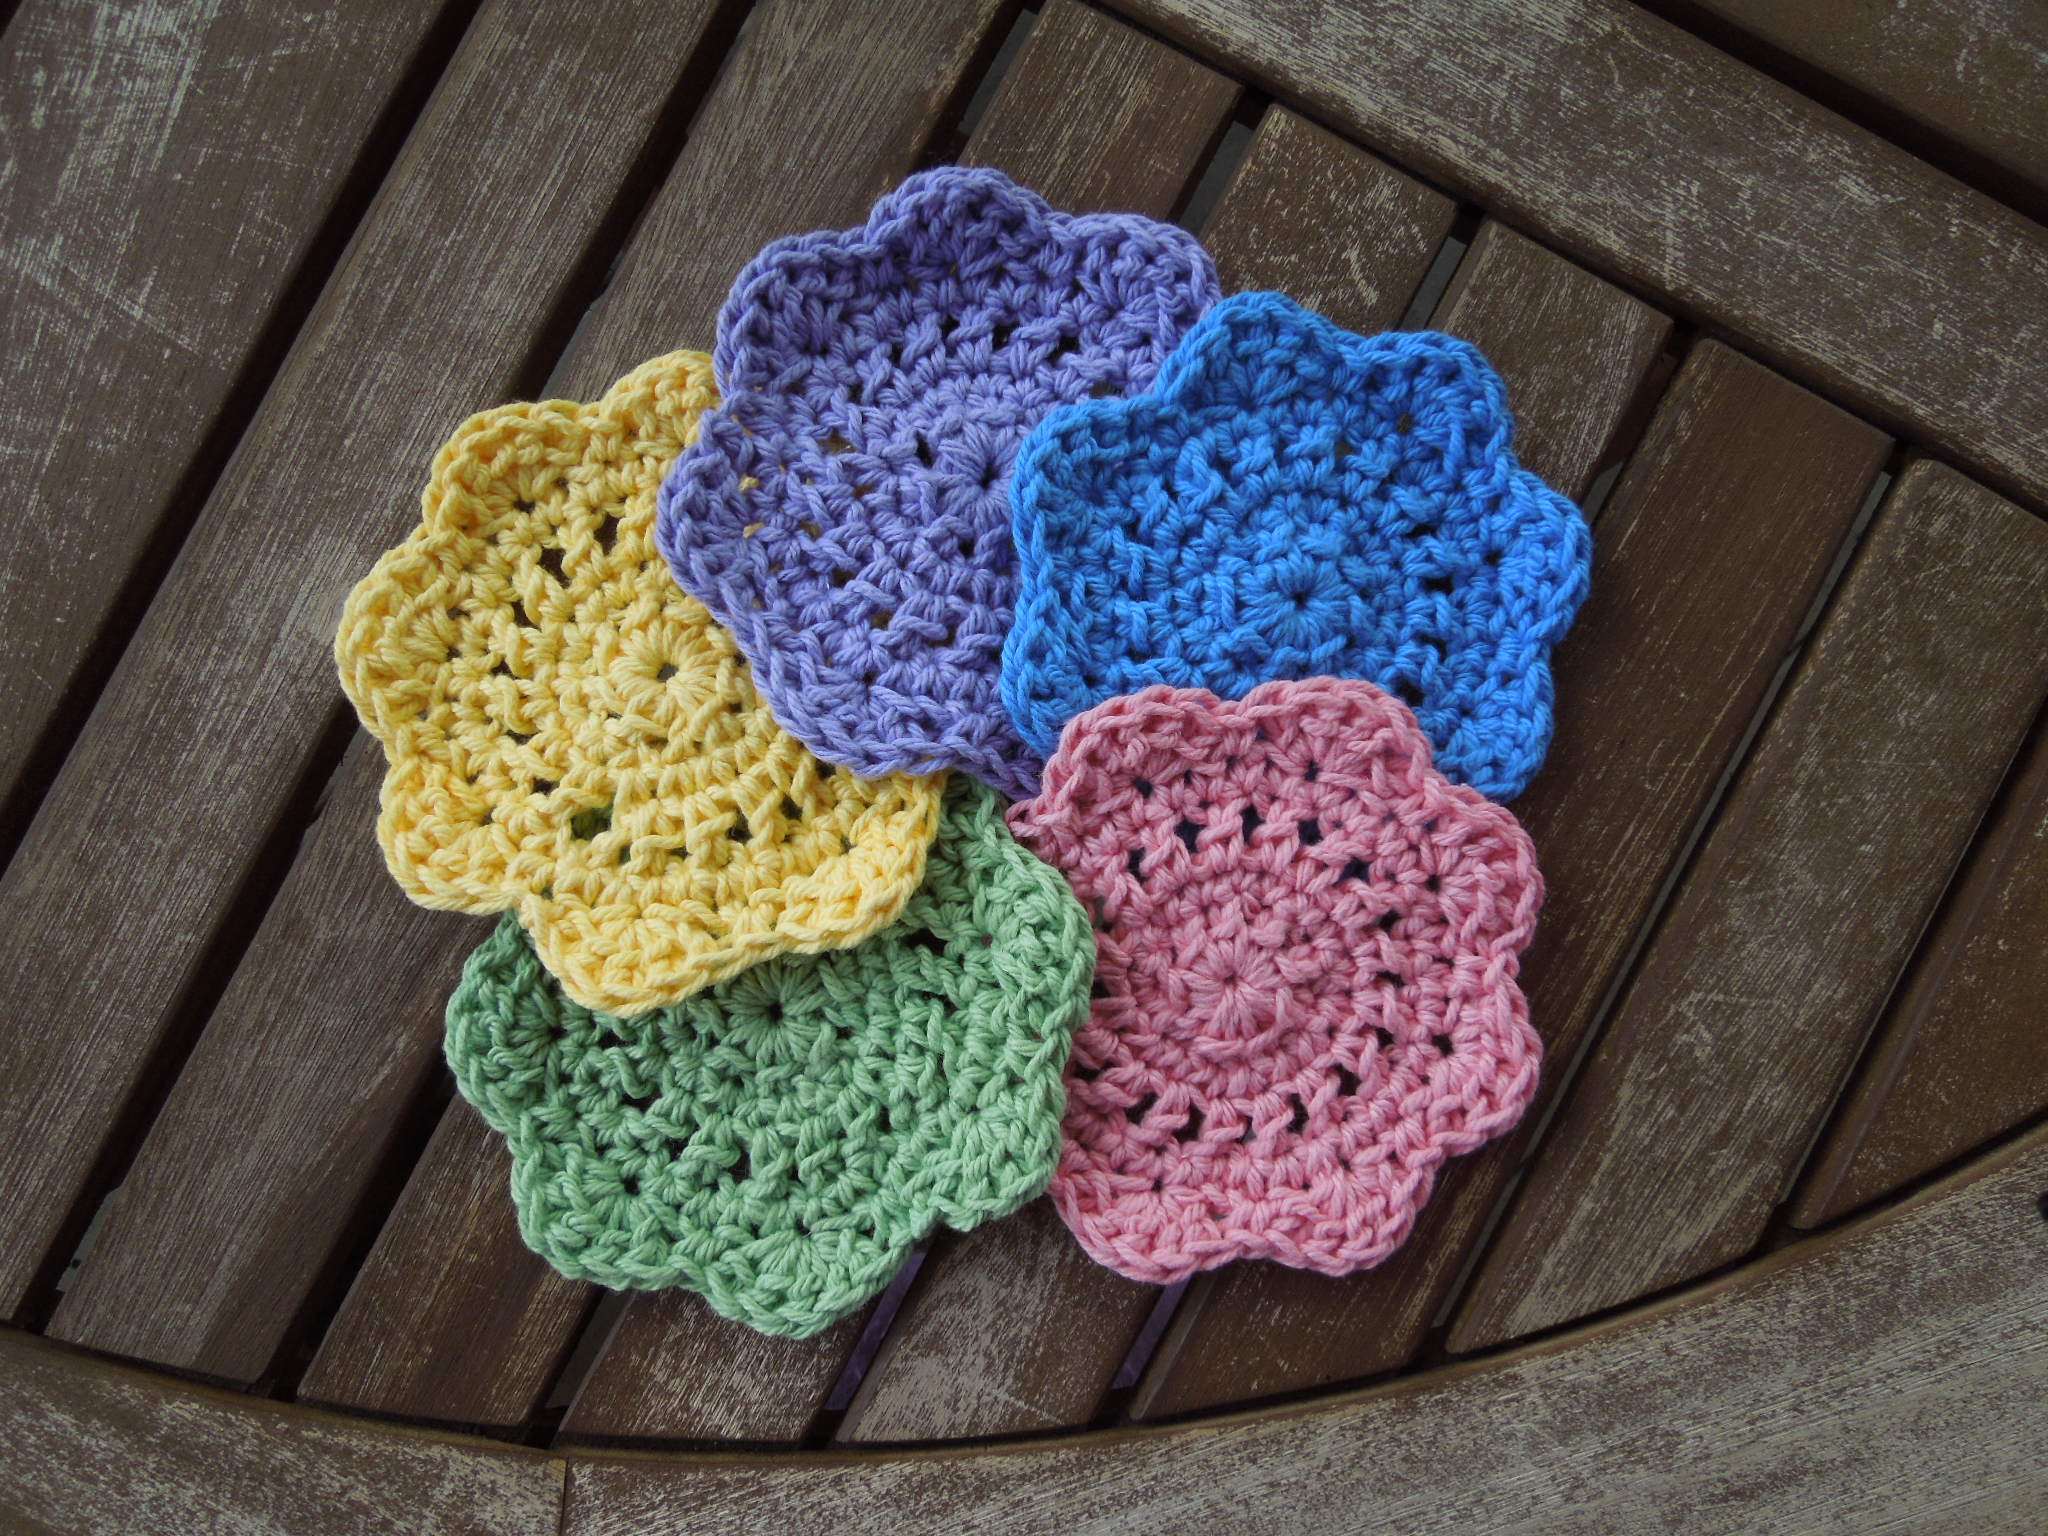 Free Crochet Patterns Of Coasters : Quick & Easy Coasters Free Crochet Pattern